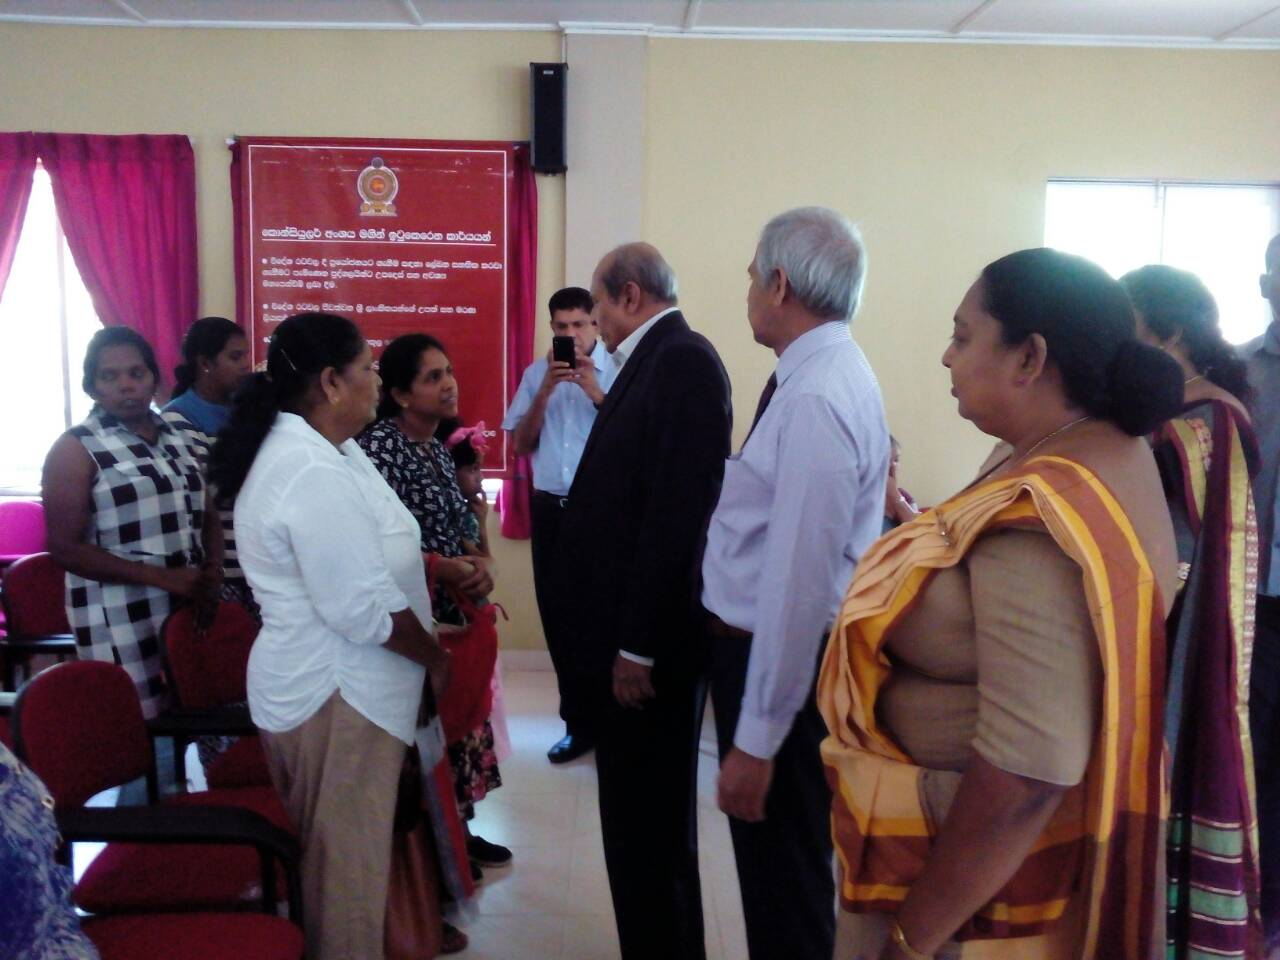 INTEGRATED CONSULAR MOBILE SERVICE [ICMS] CONDUCTED IN KURUNEGALA AND DAMBULLA